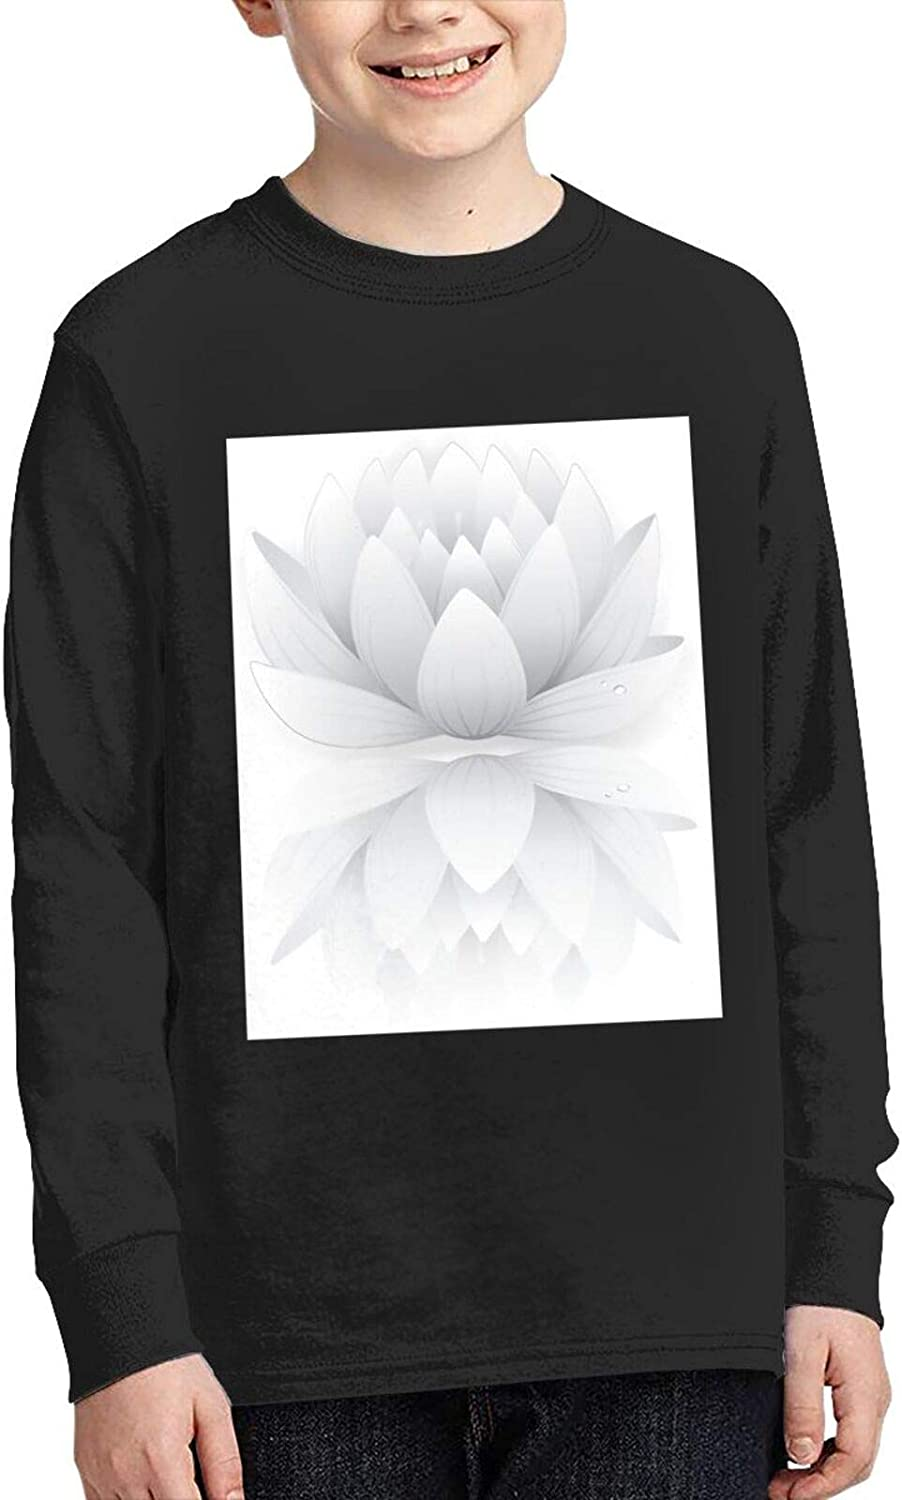 TZT Grey Lotus Sweater Fashion and Comfortable Children's Sweater